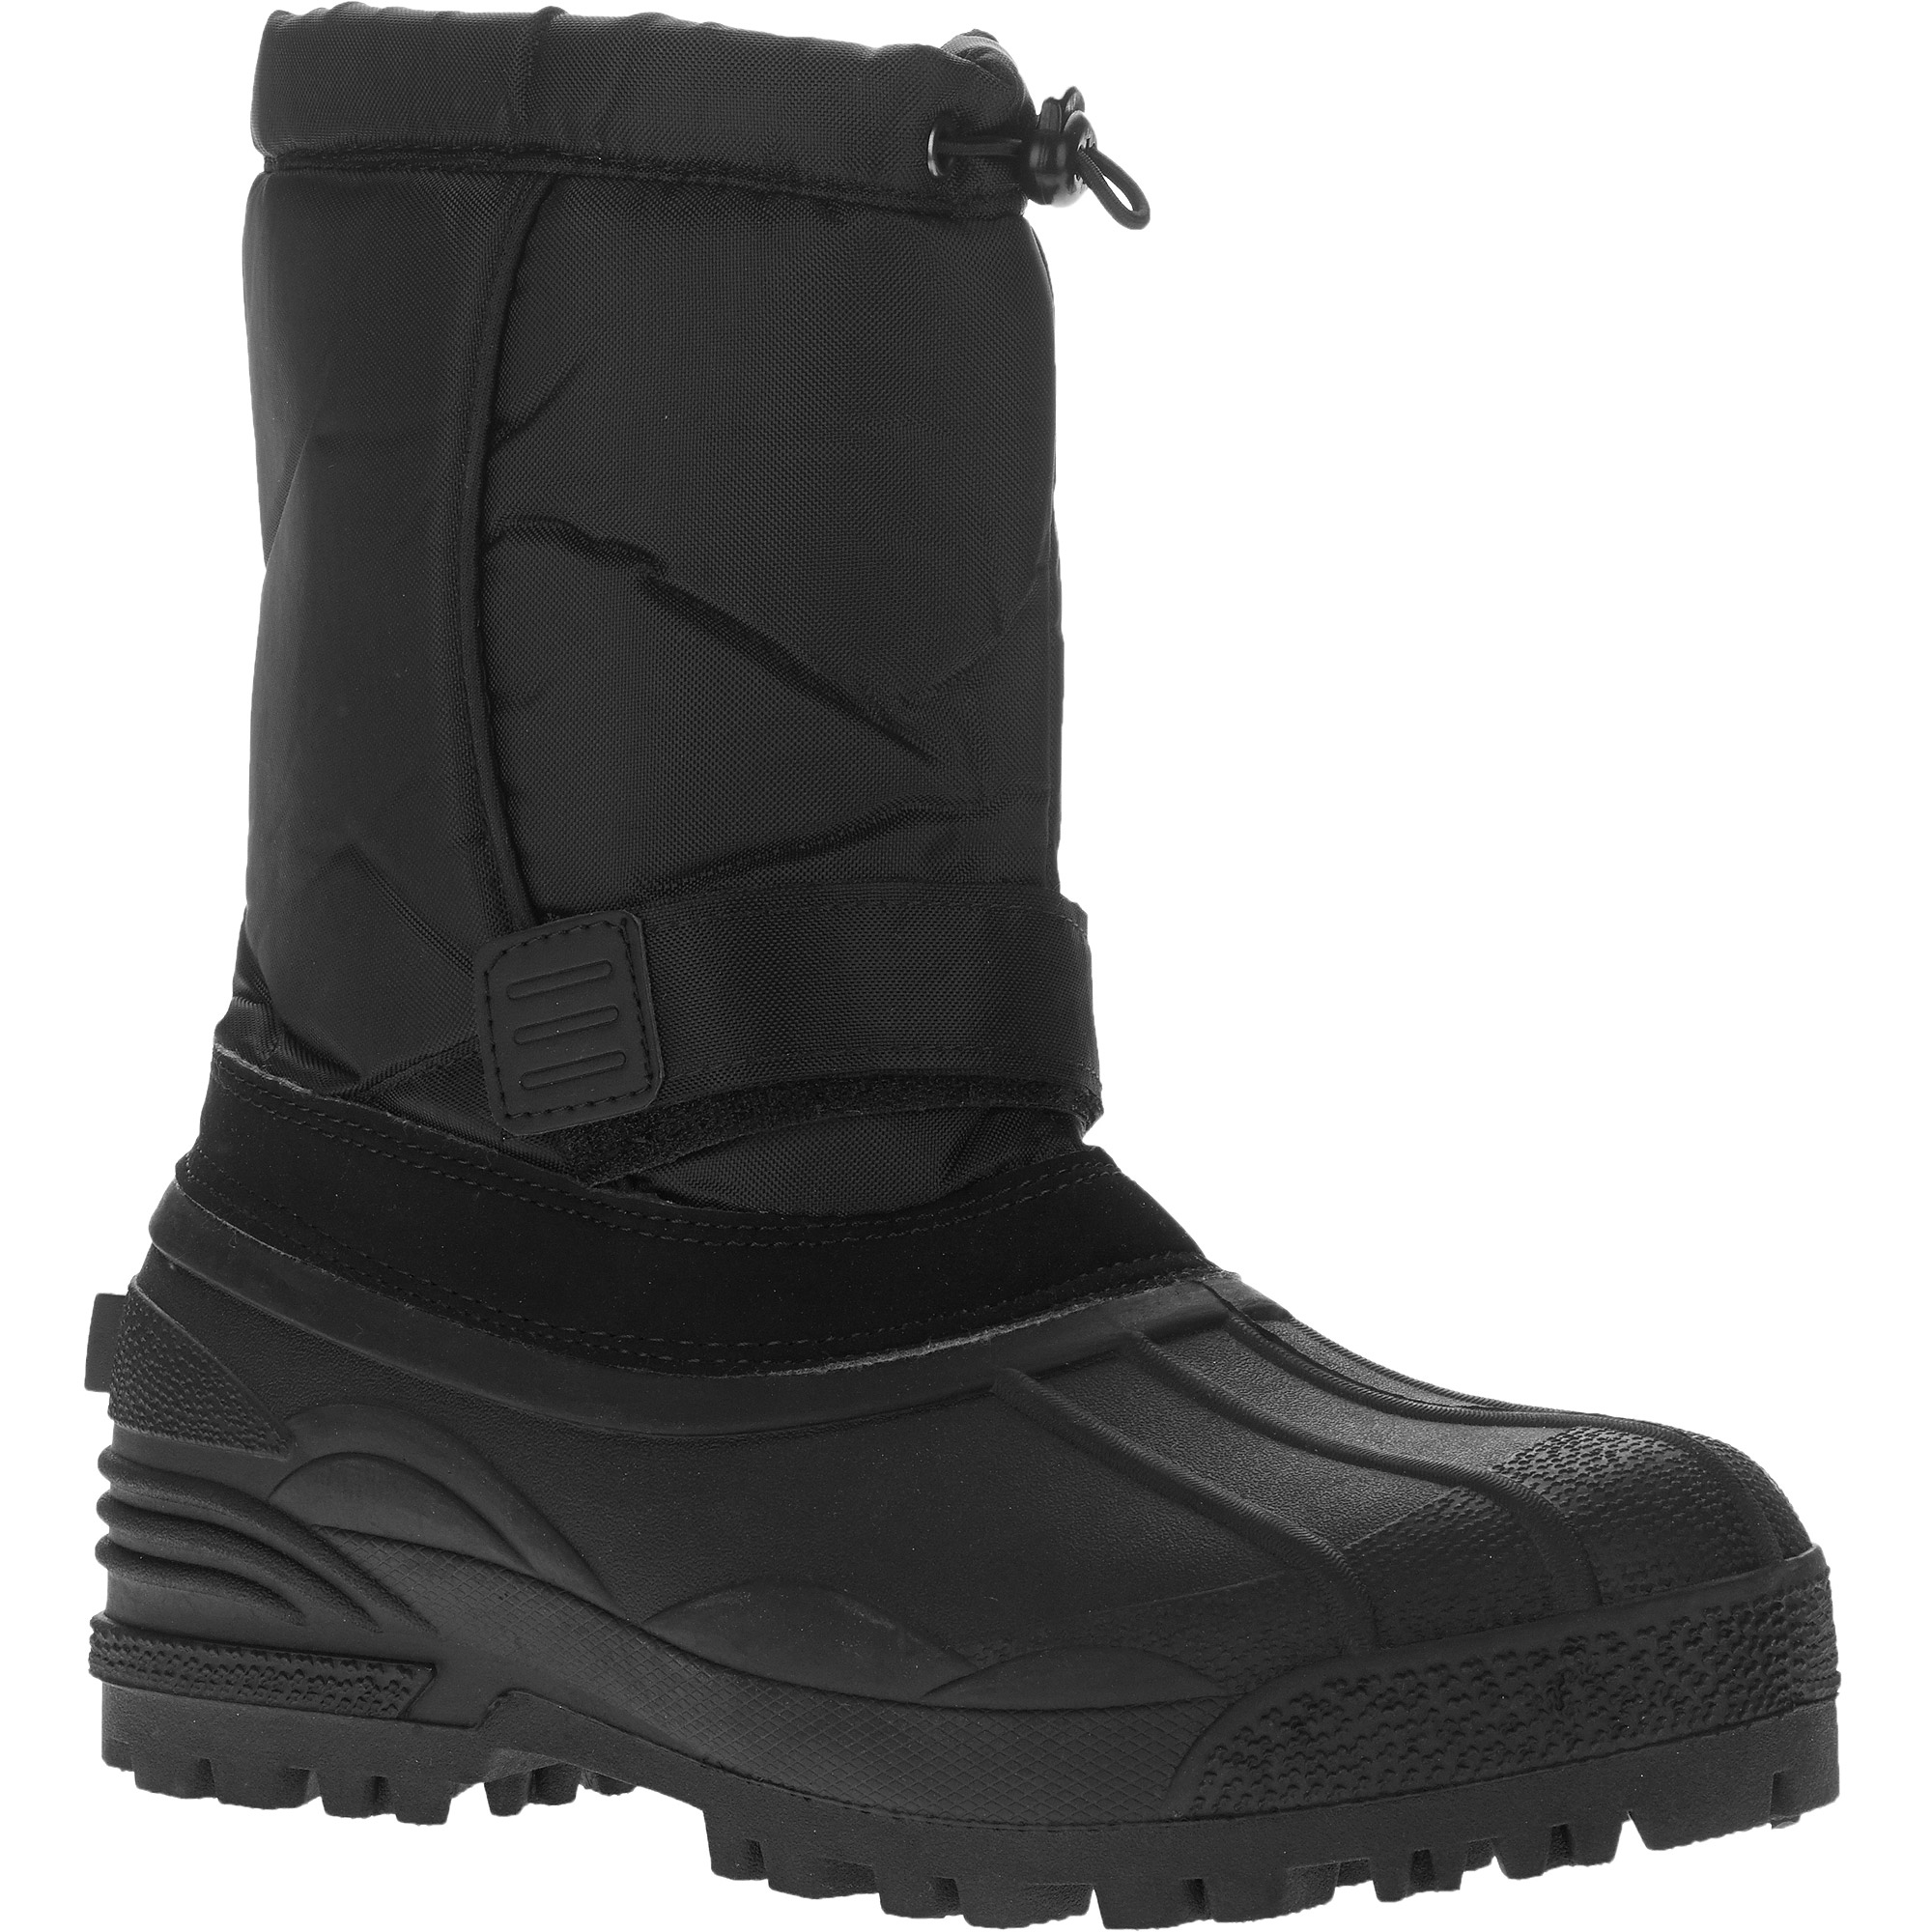 Men's Krugge Winter Boot - Walmart.com